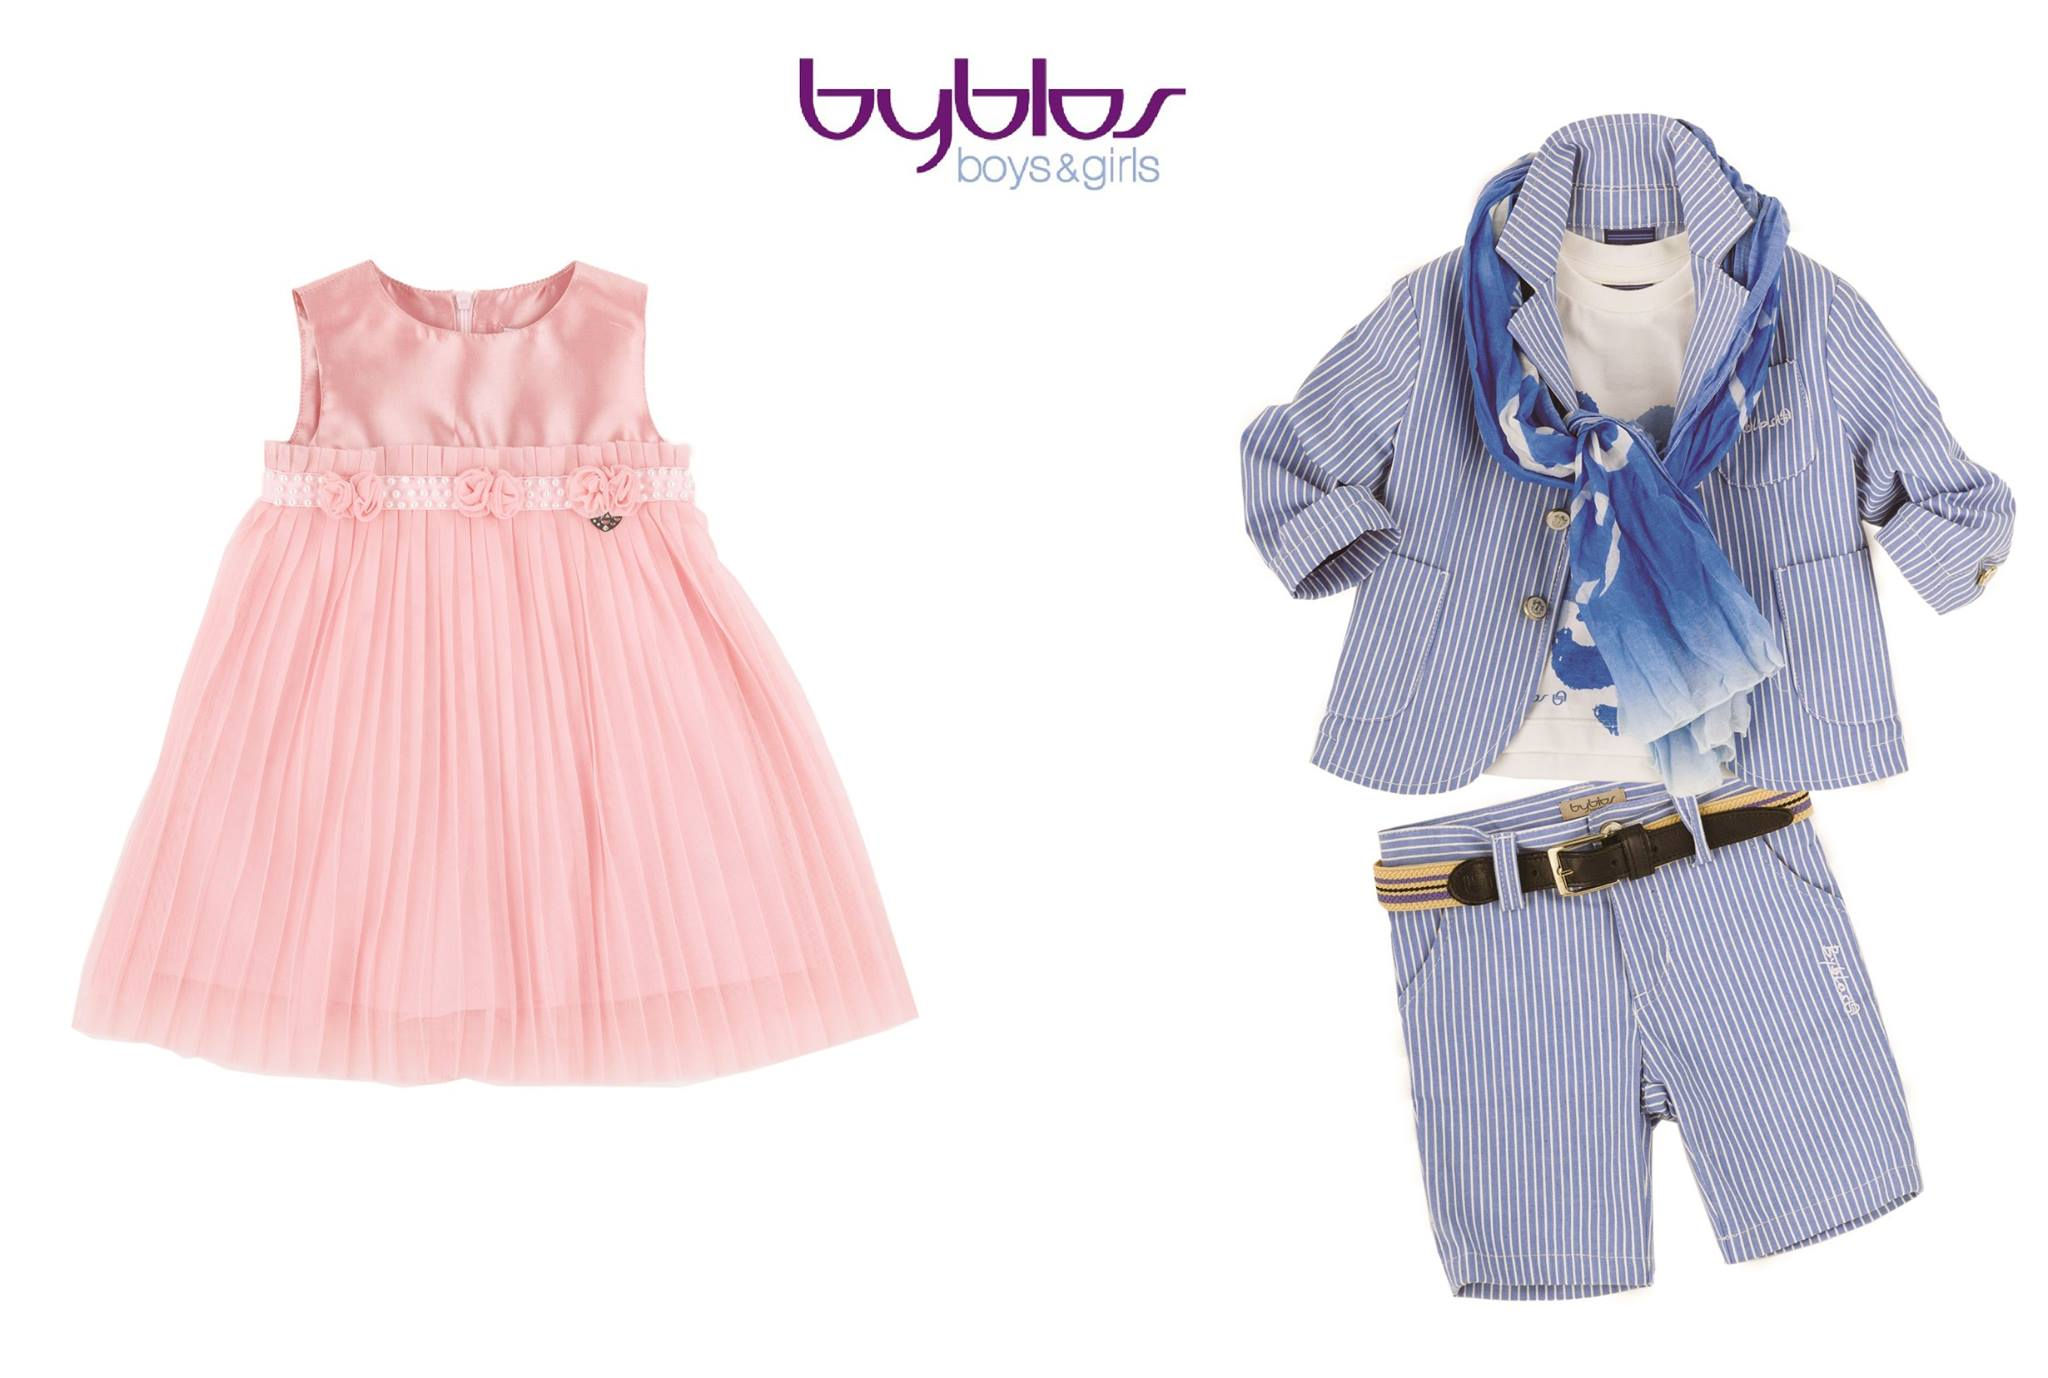 newest collection f8341 b0608 Byblos Boys e Girls chic anche d'estate! - Mamme a spillo